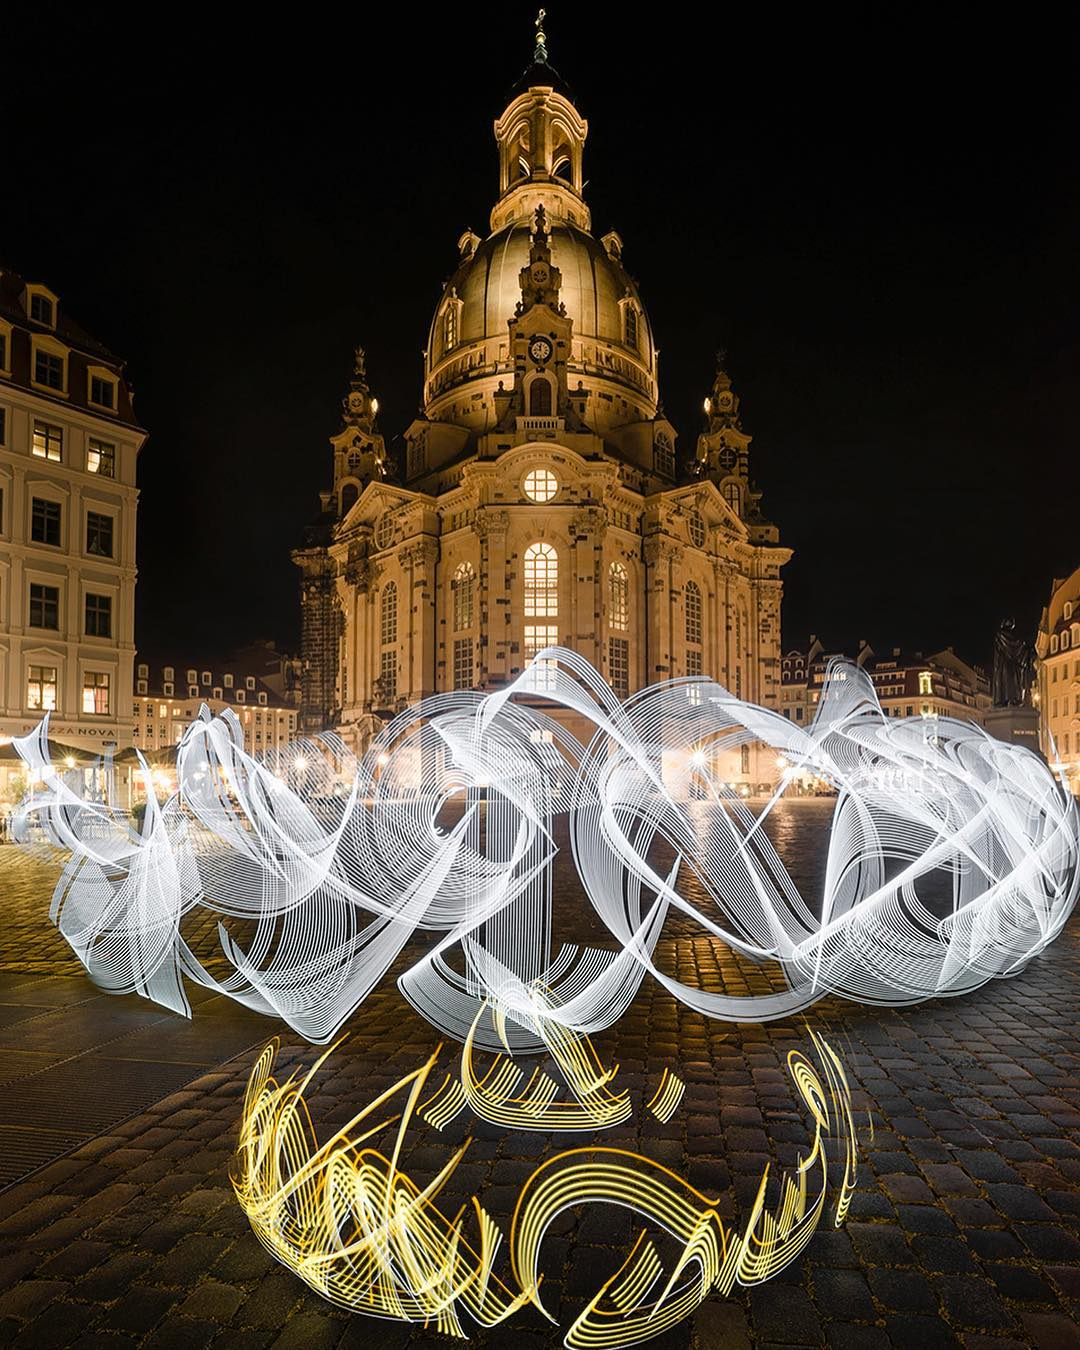 Temporary Calligraphy Illuminates Historic Sites Throughout Europe